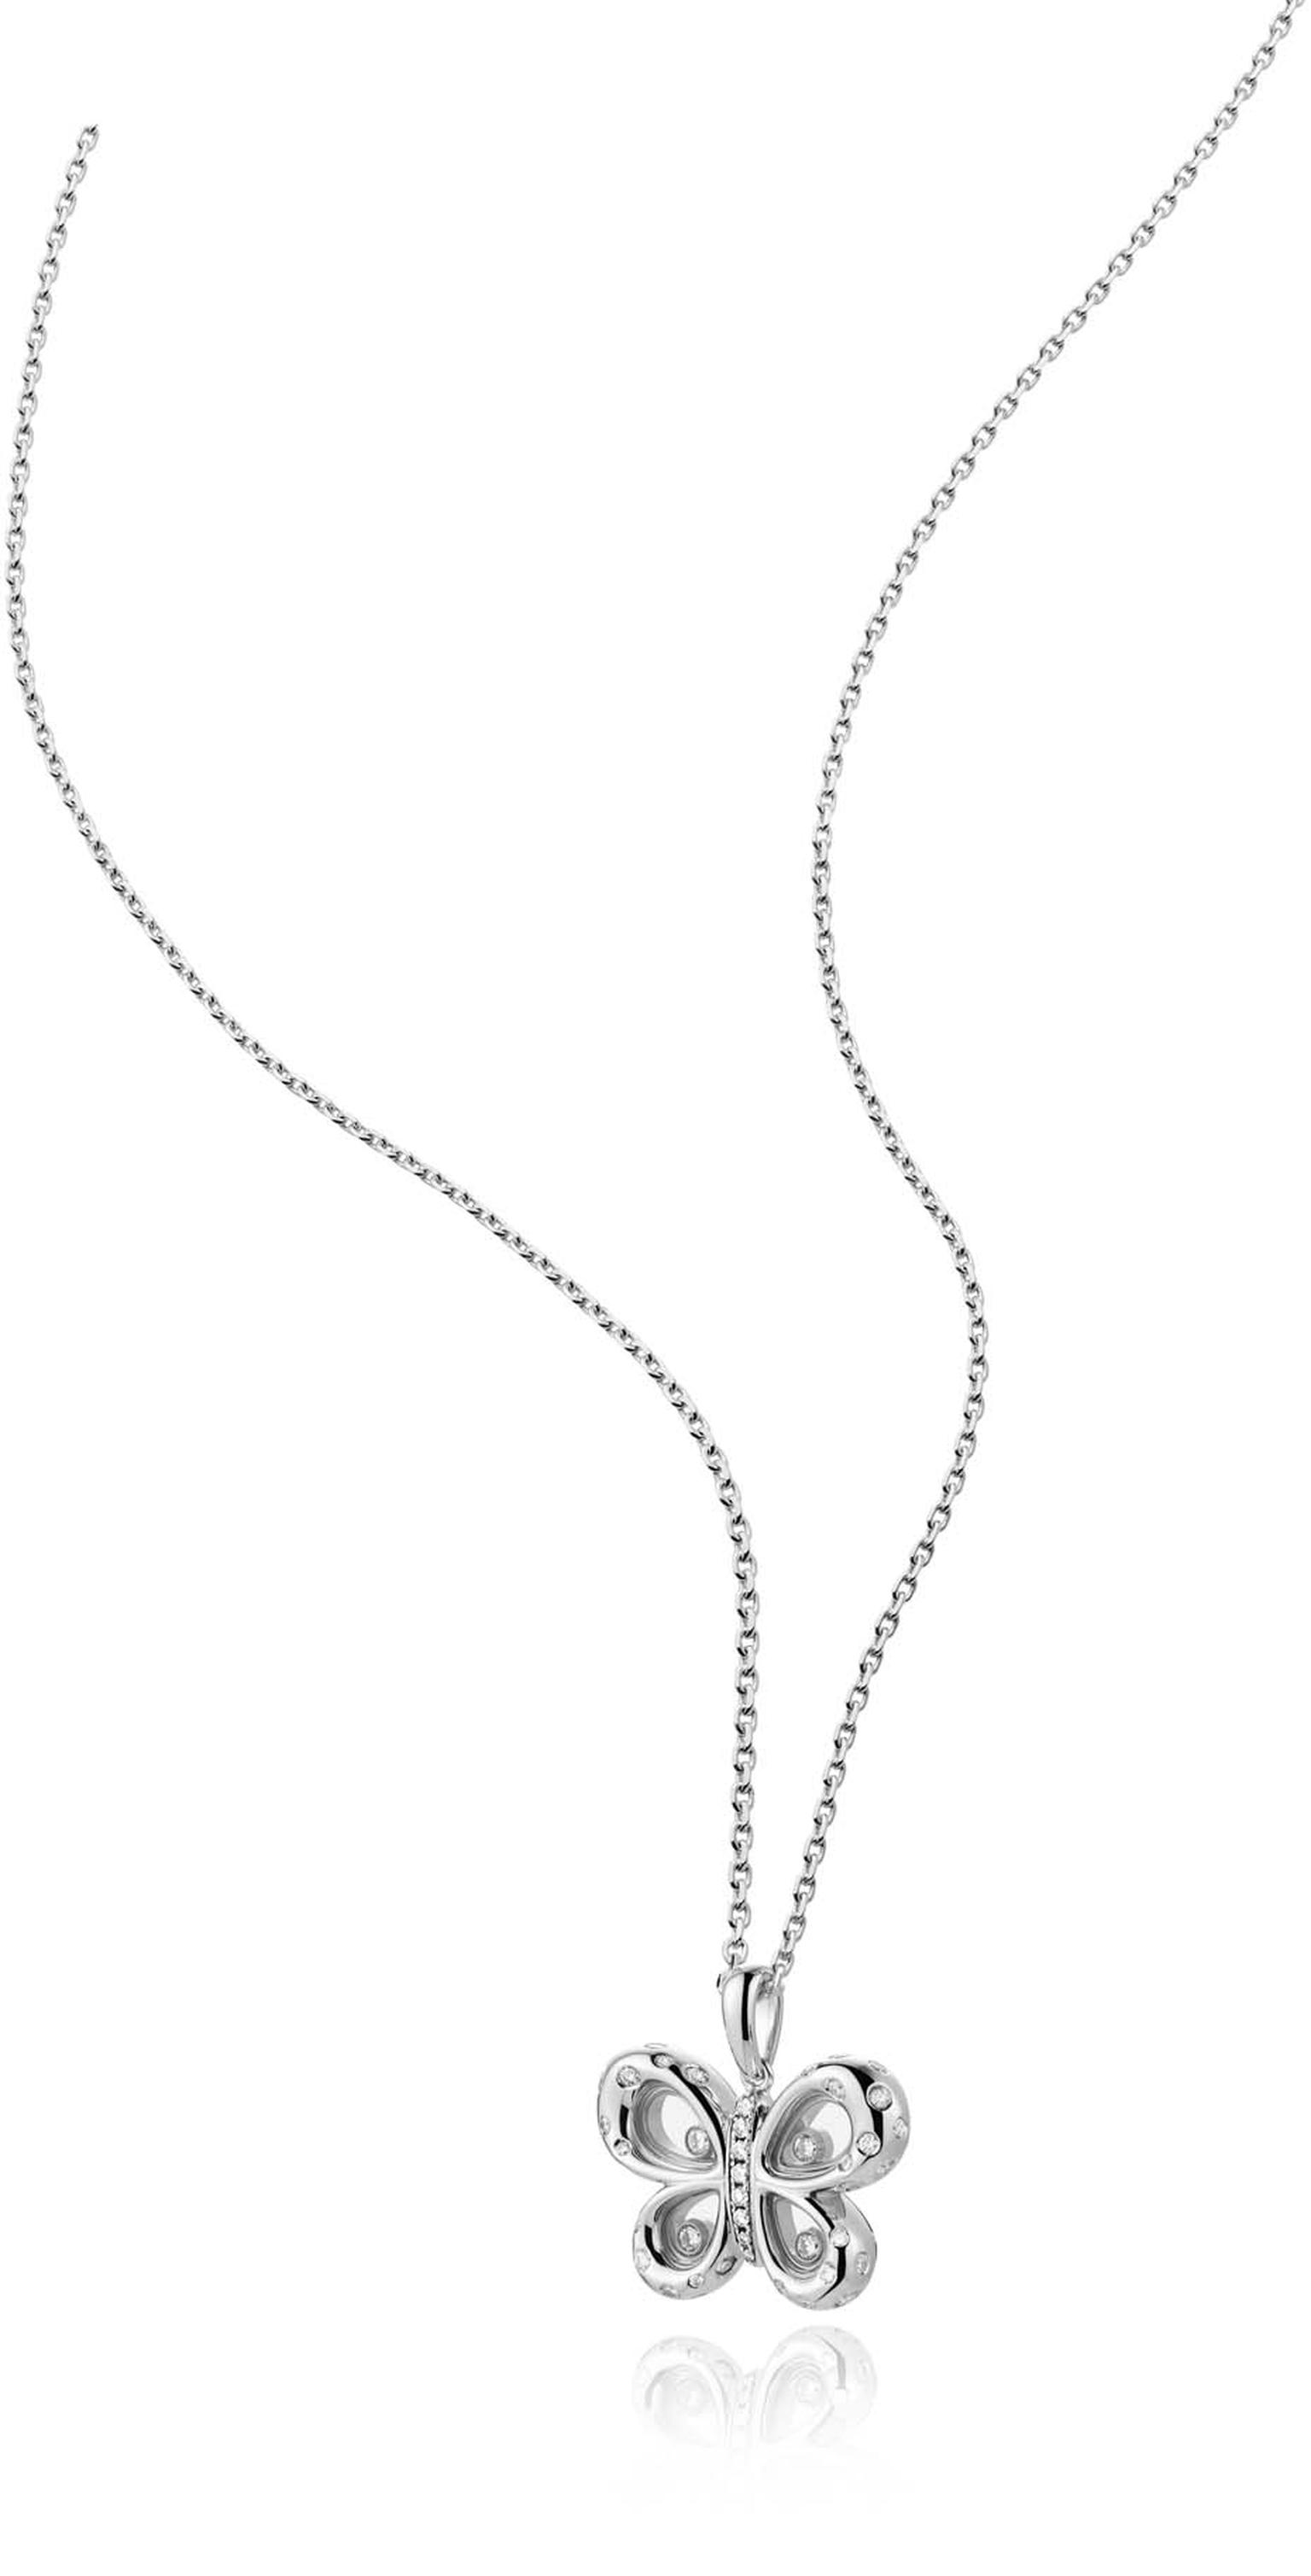 Chopard Happy Diamonds Butterflies necklace in white gold and diamonds